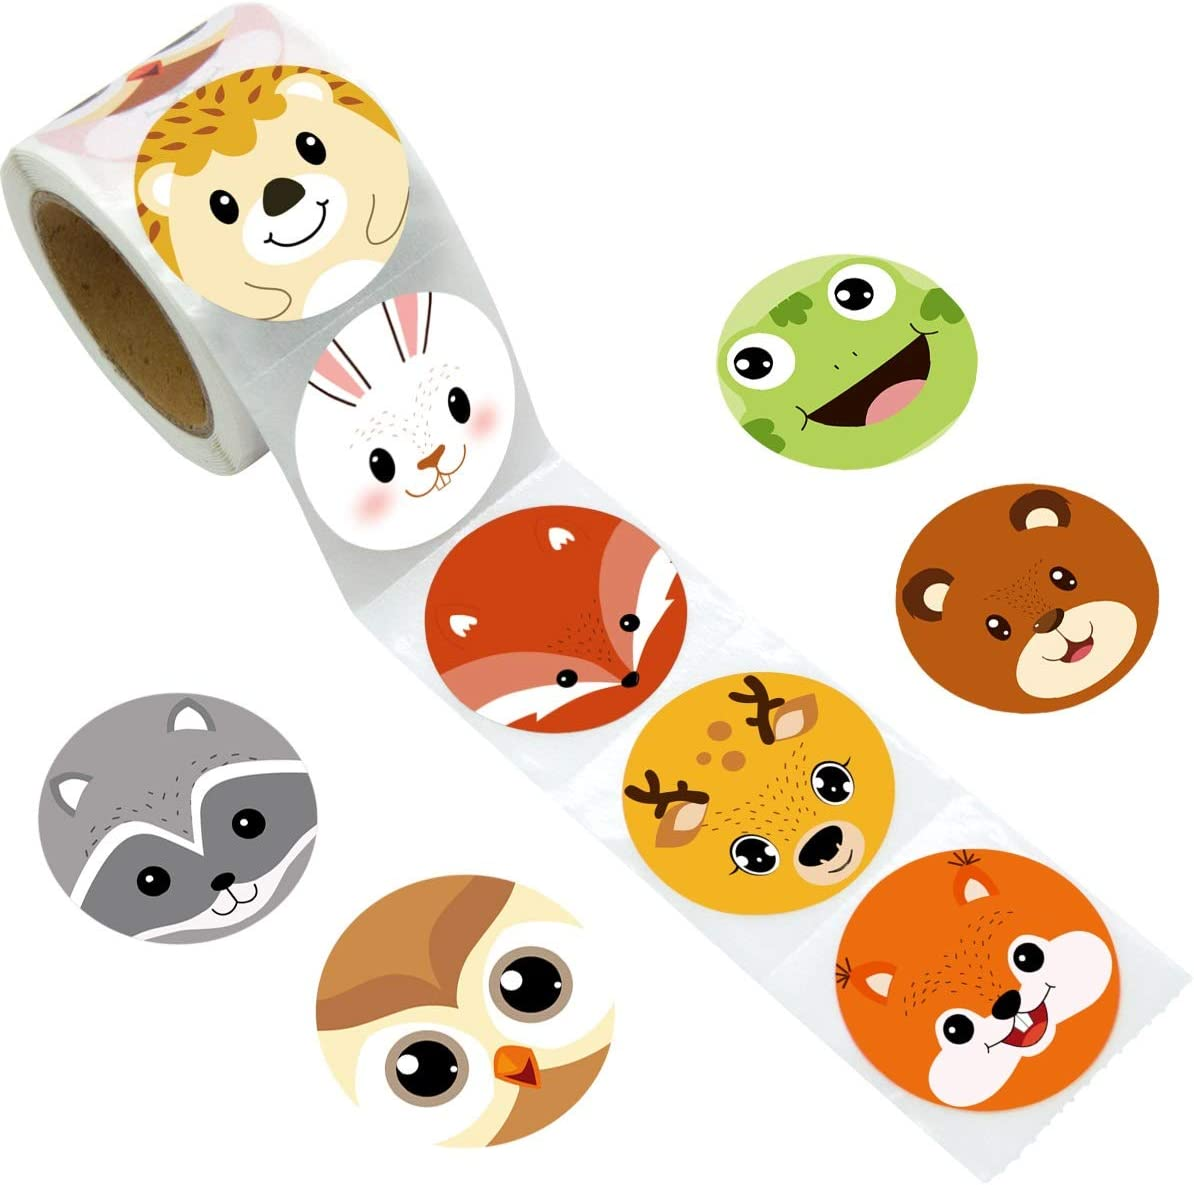 Woodland Friends Animal Stickers Perforated Roll Stickers 200PCS for Kids Party Baby Shower